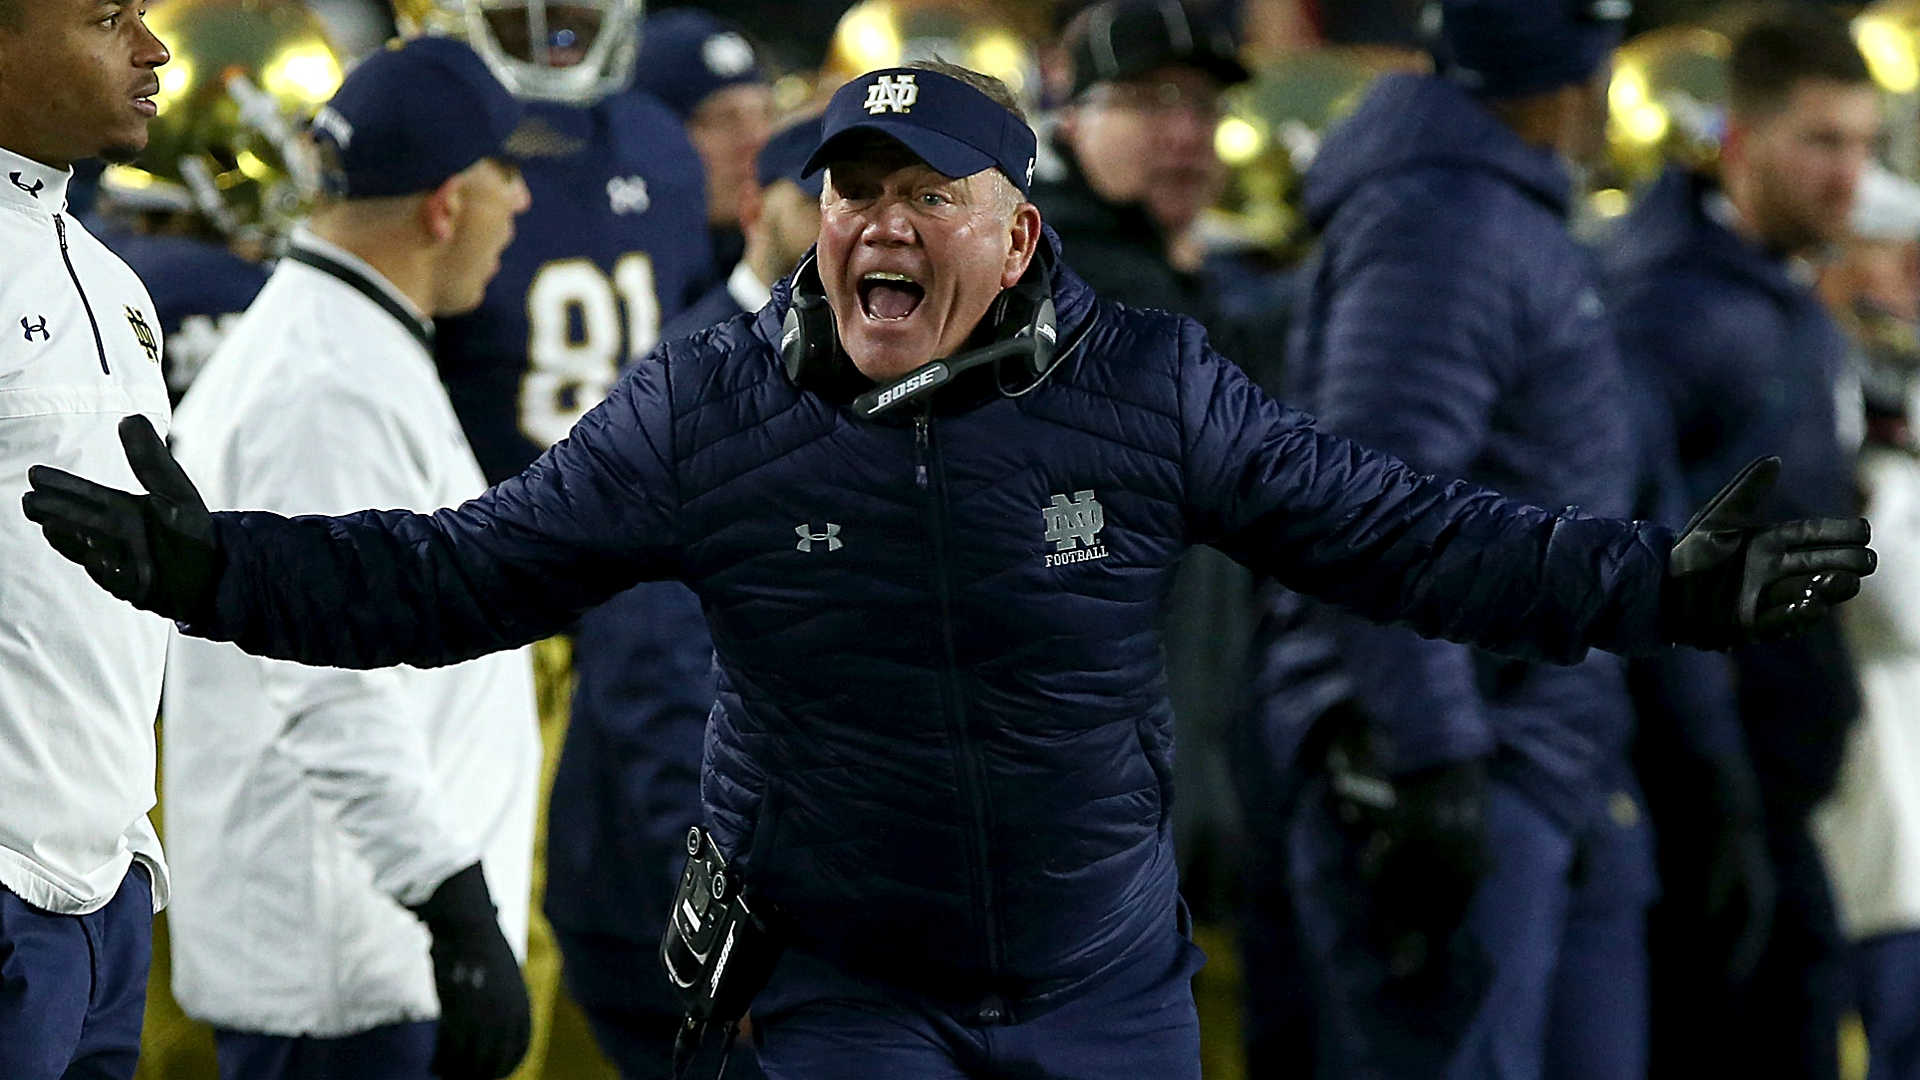 Notre Dame's Brian Kelly threatens to boycott College Football Playoff if families can't attend